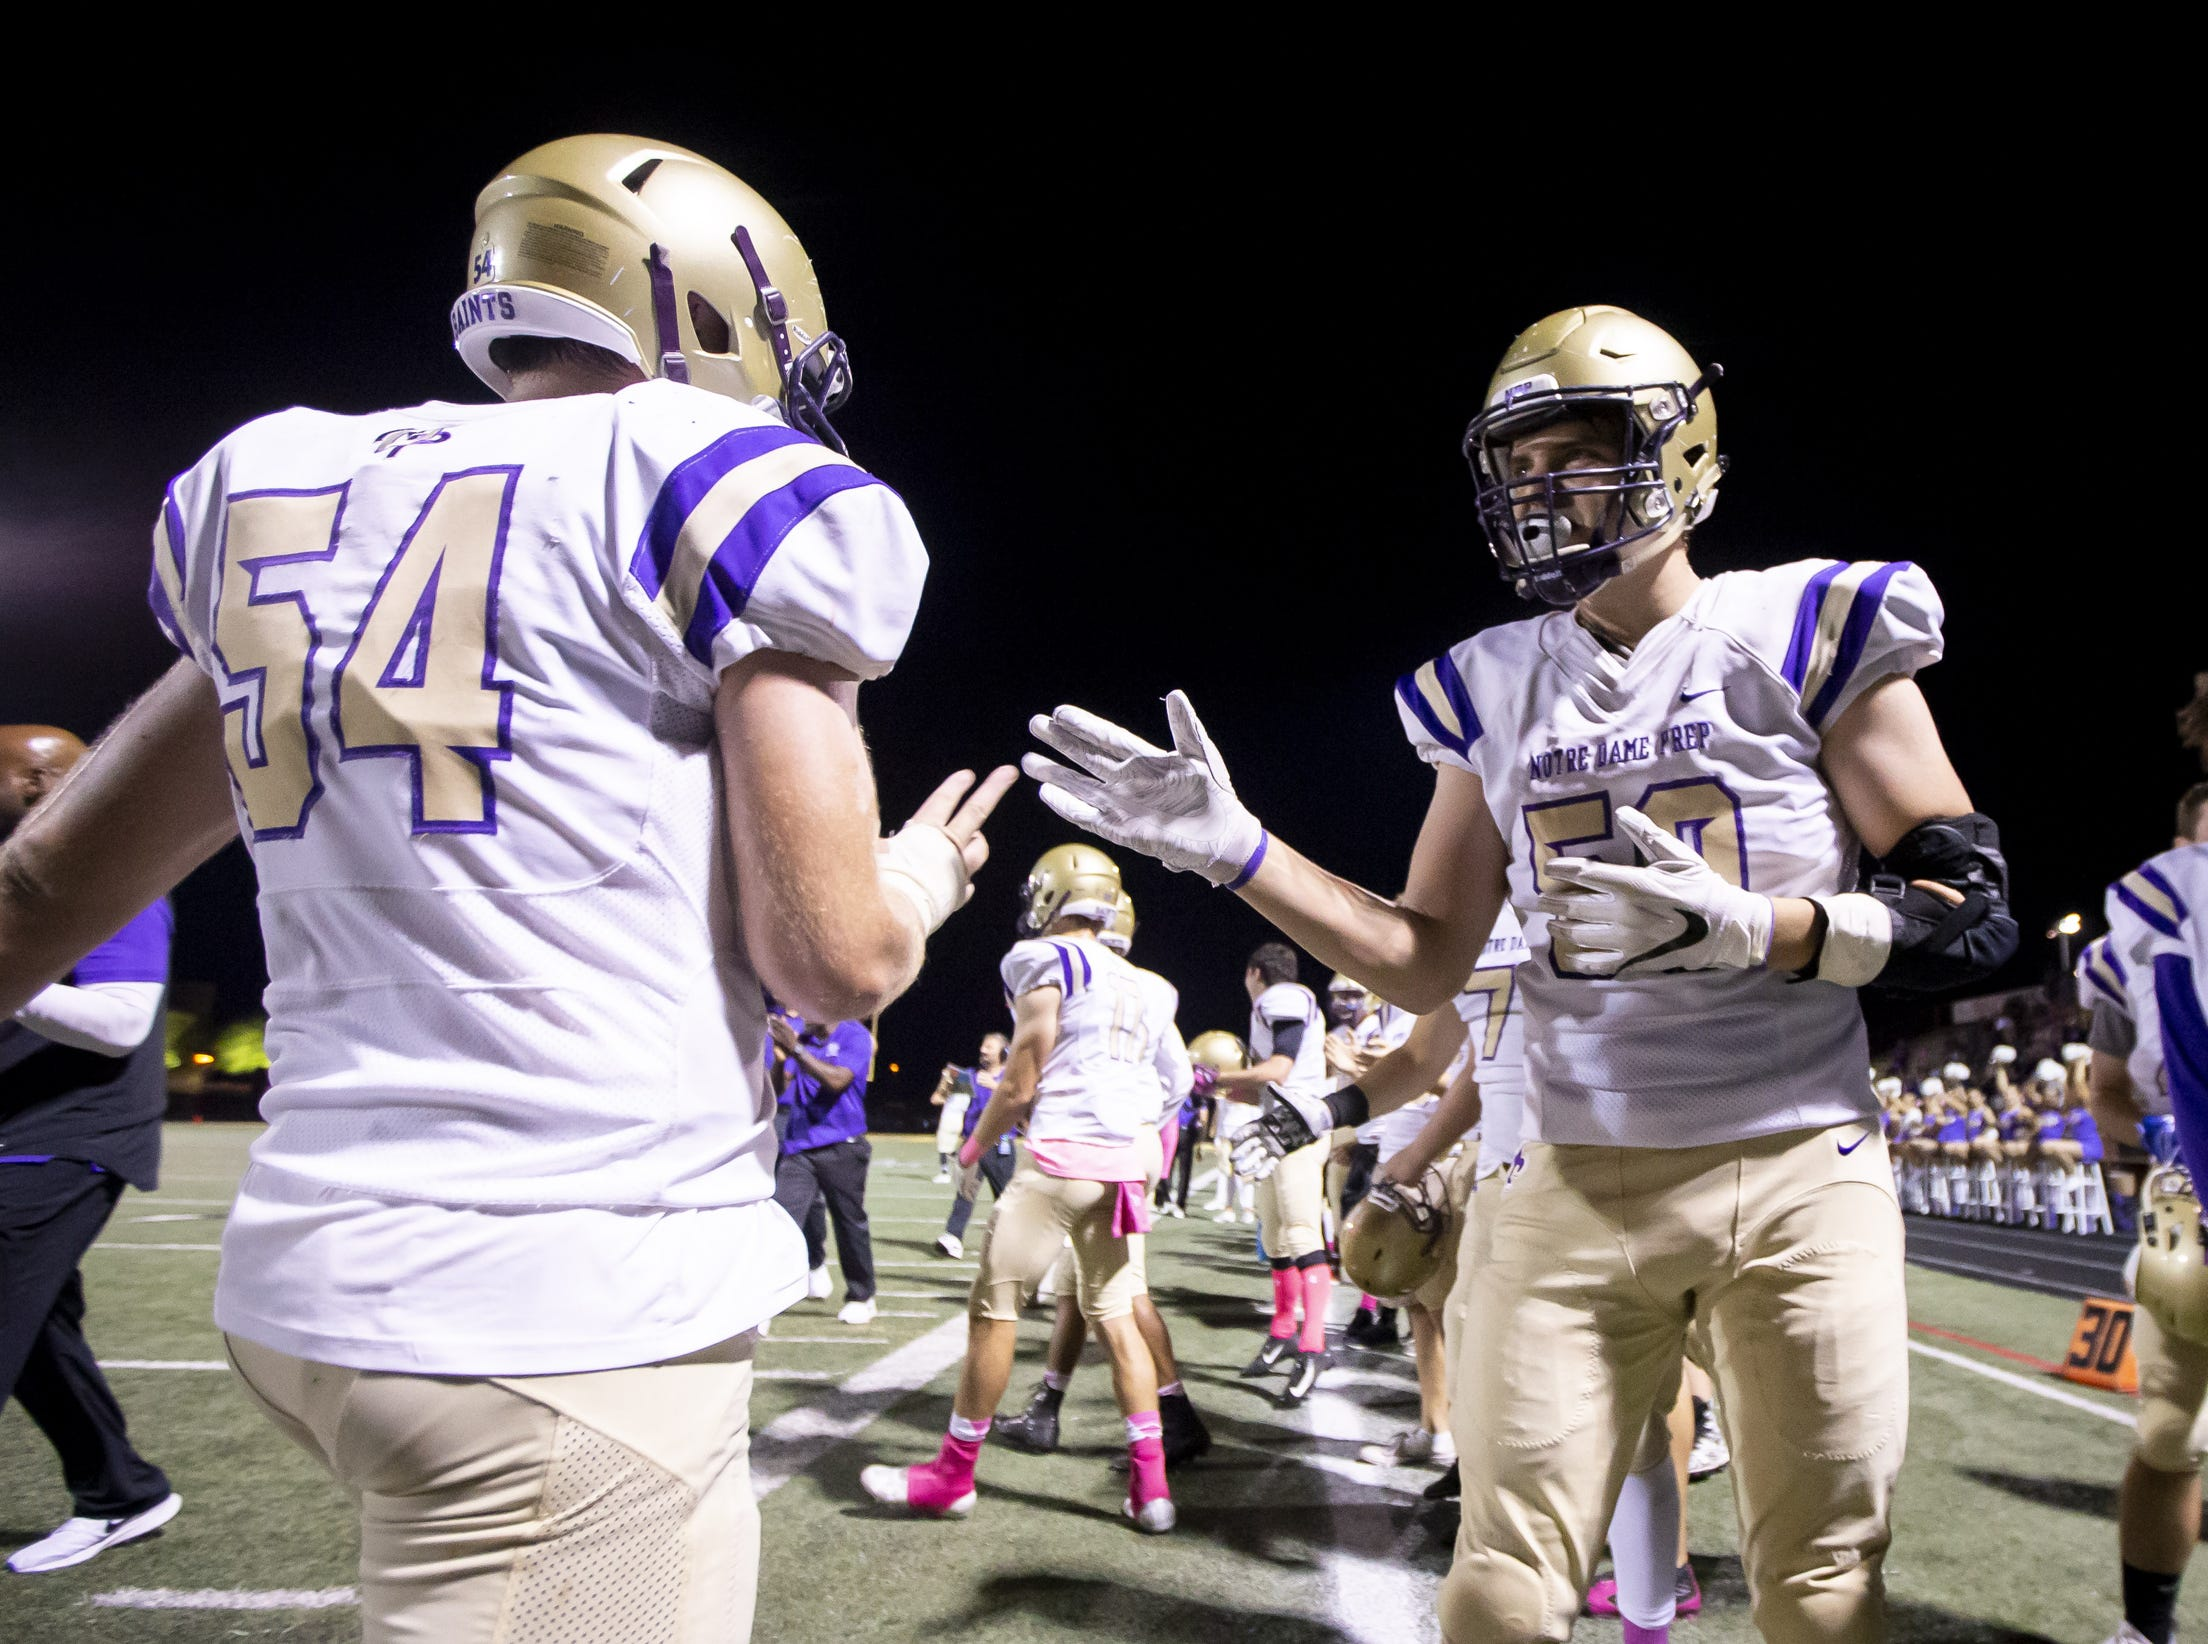 Notre Dame Prep Saints high-five following a score against the Horizon Huskies at Horizon High School on Friday, October 5, 2018 in Scottsdale, Arizona. #azhsfb